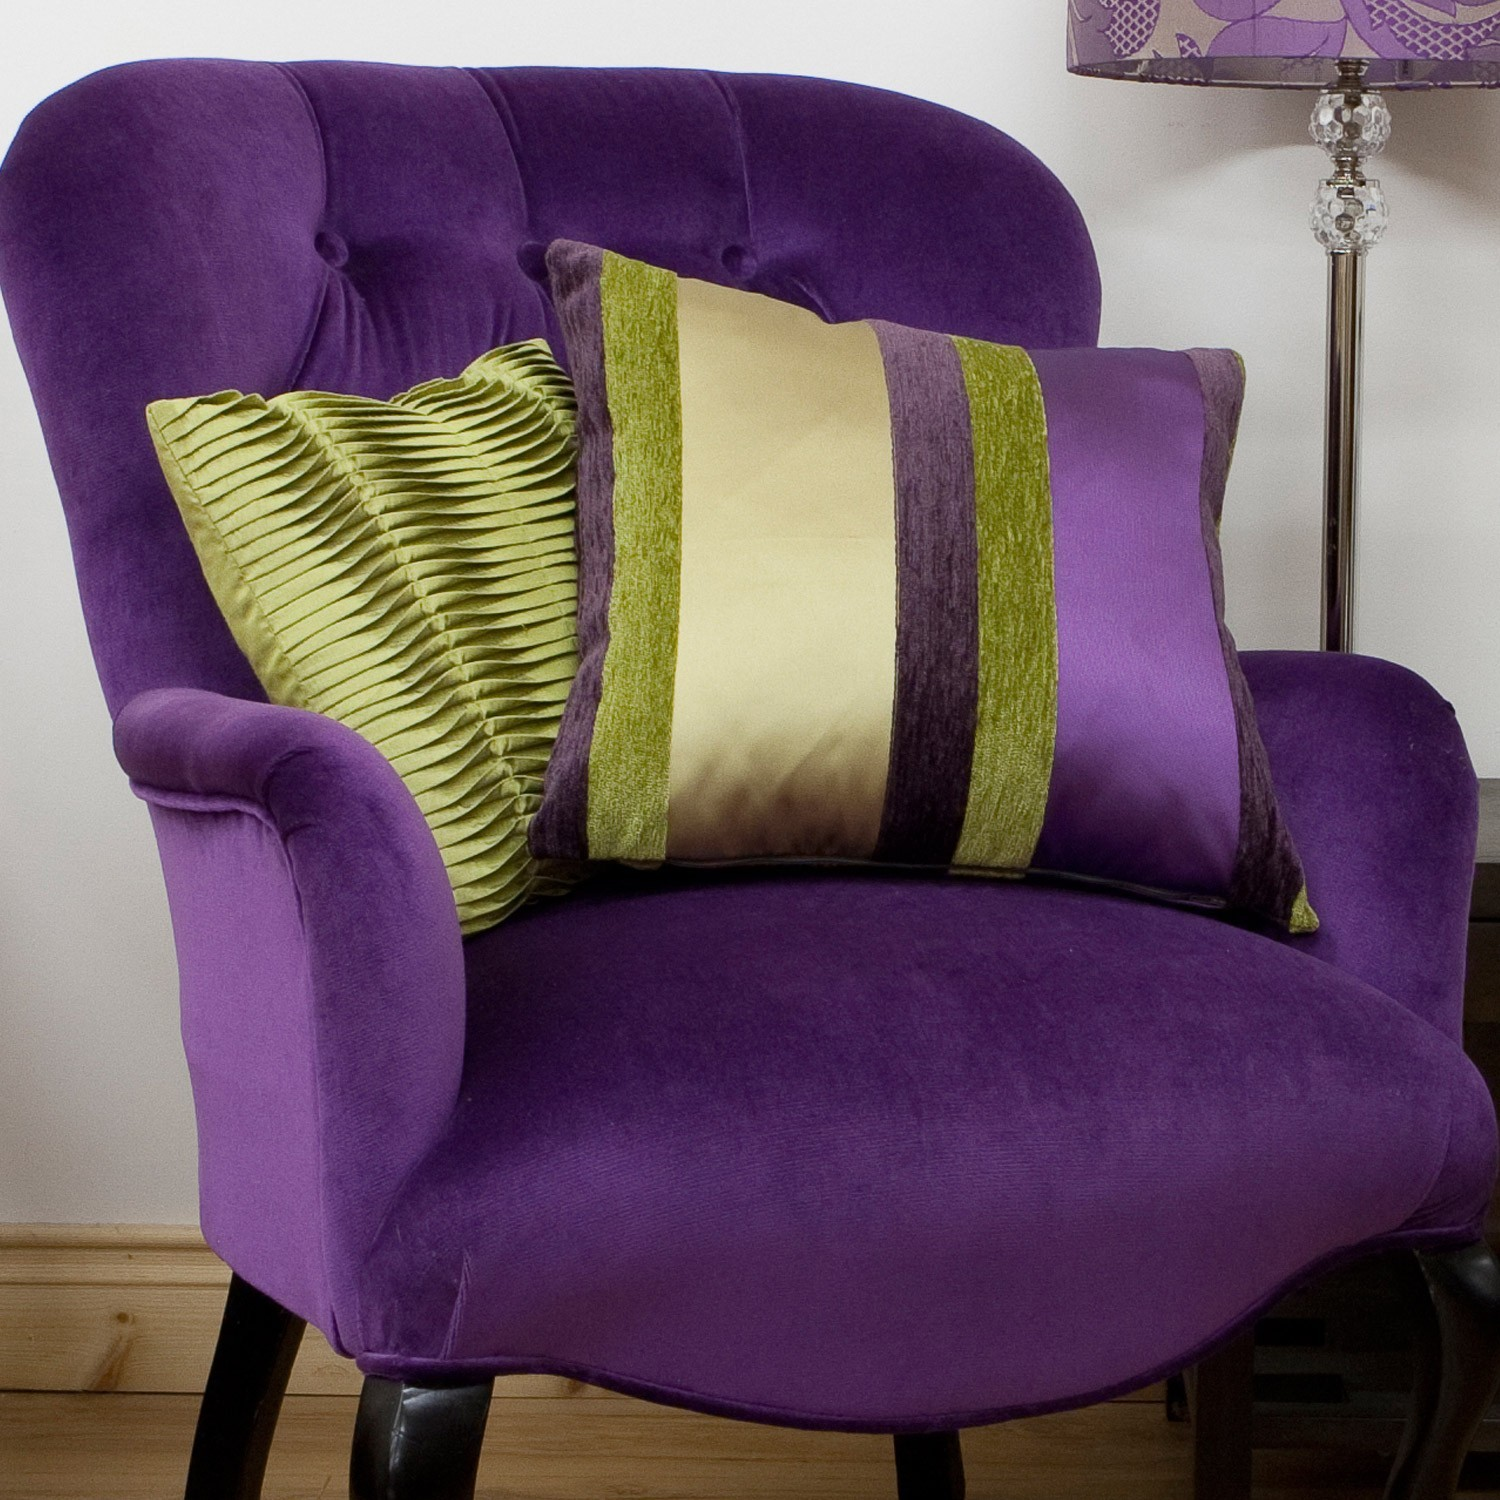 Decorating With The Color Purple Purple Chair Purple Sofa And - Purple decorative bedroom pillows